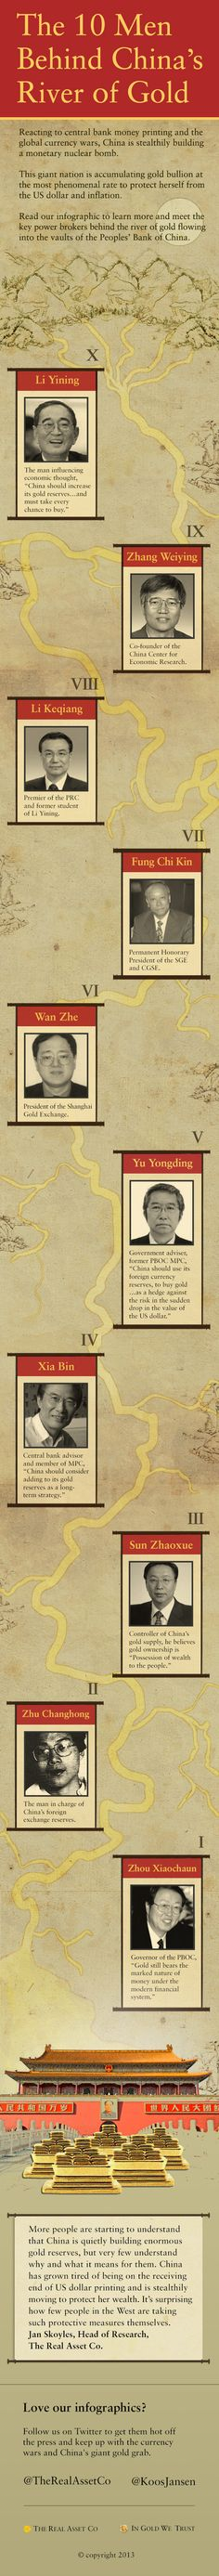 The 10 Men Behind China's River Of Gold   #Infographic #Economy #Gold